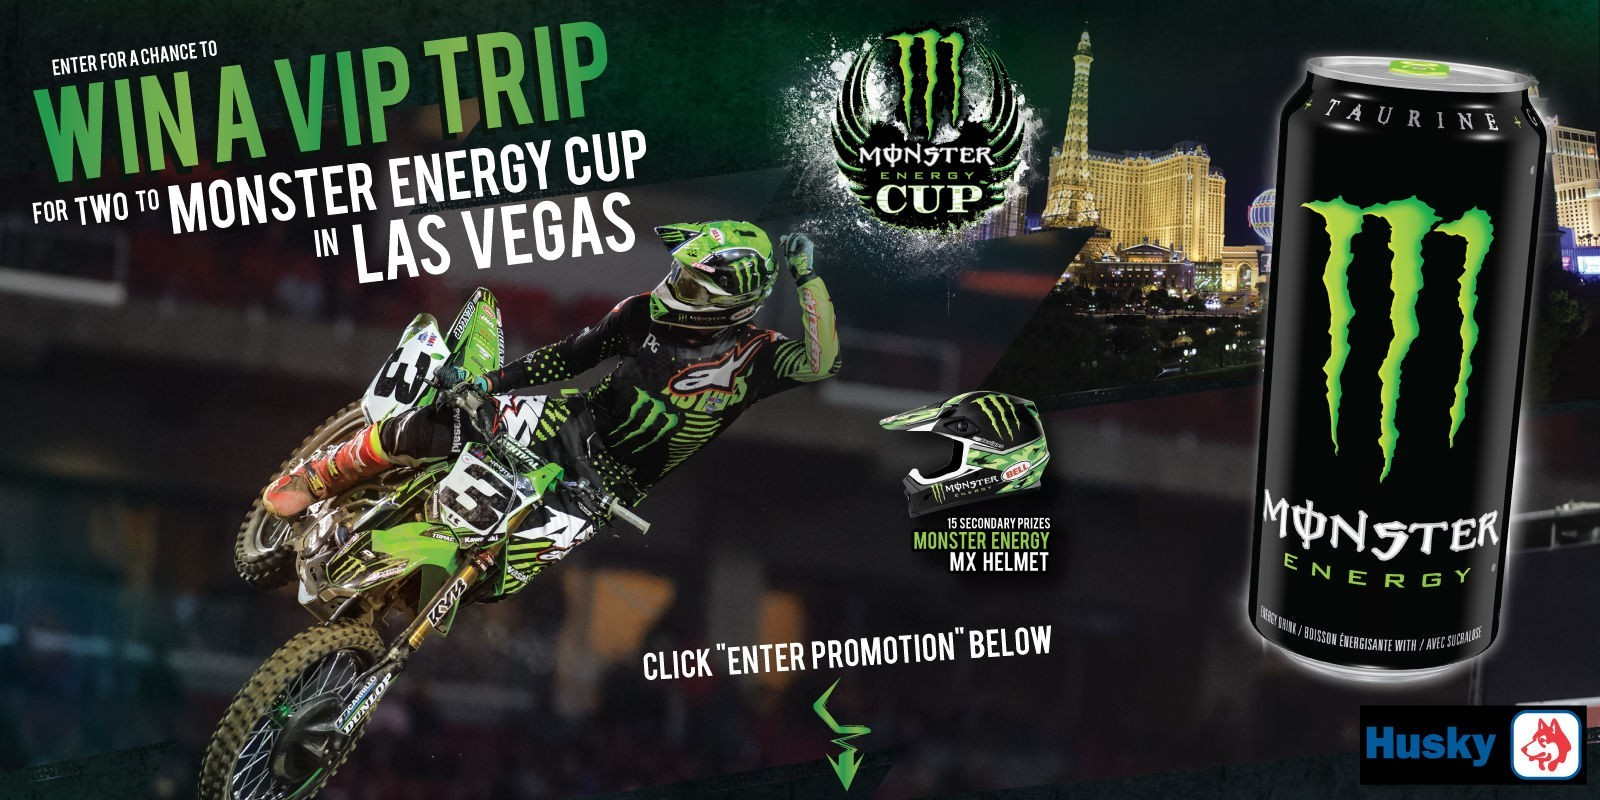 Promotion hero for Monster Energy Cup Promotion in Canada